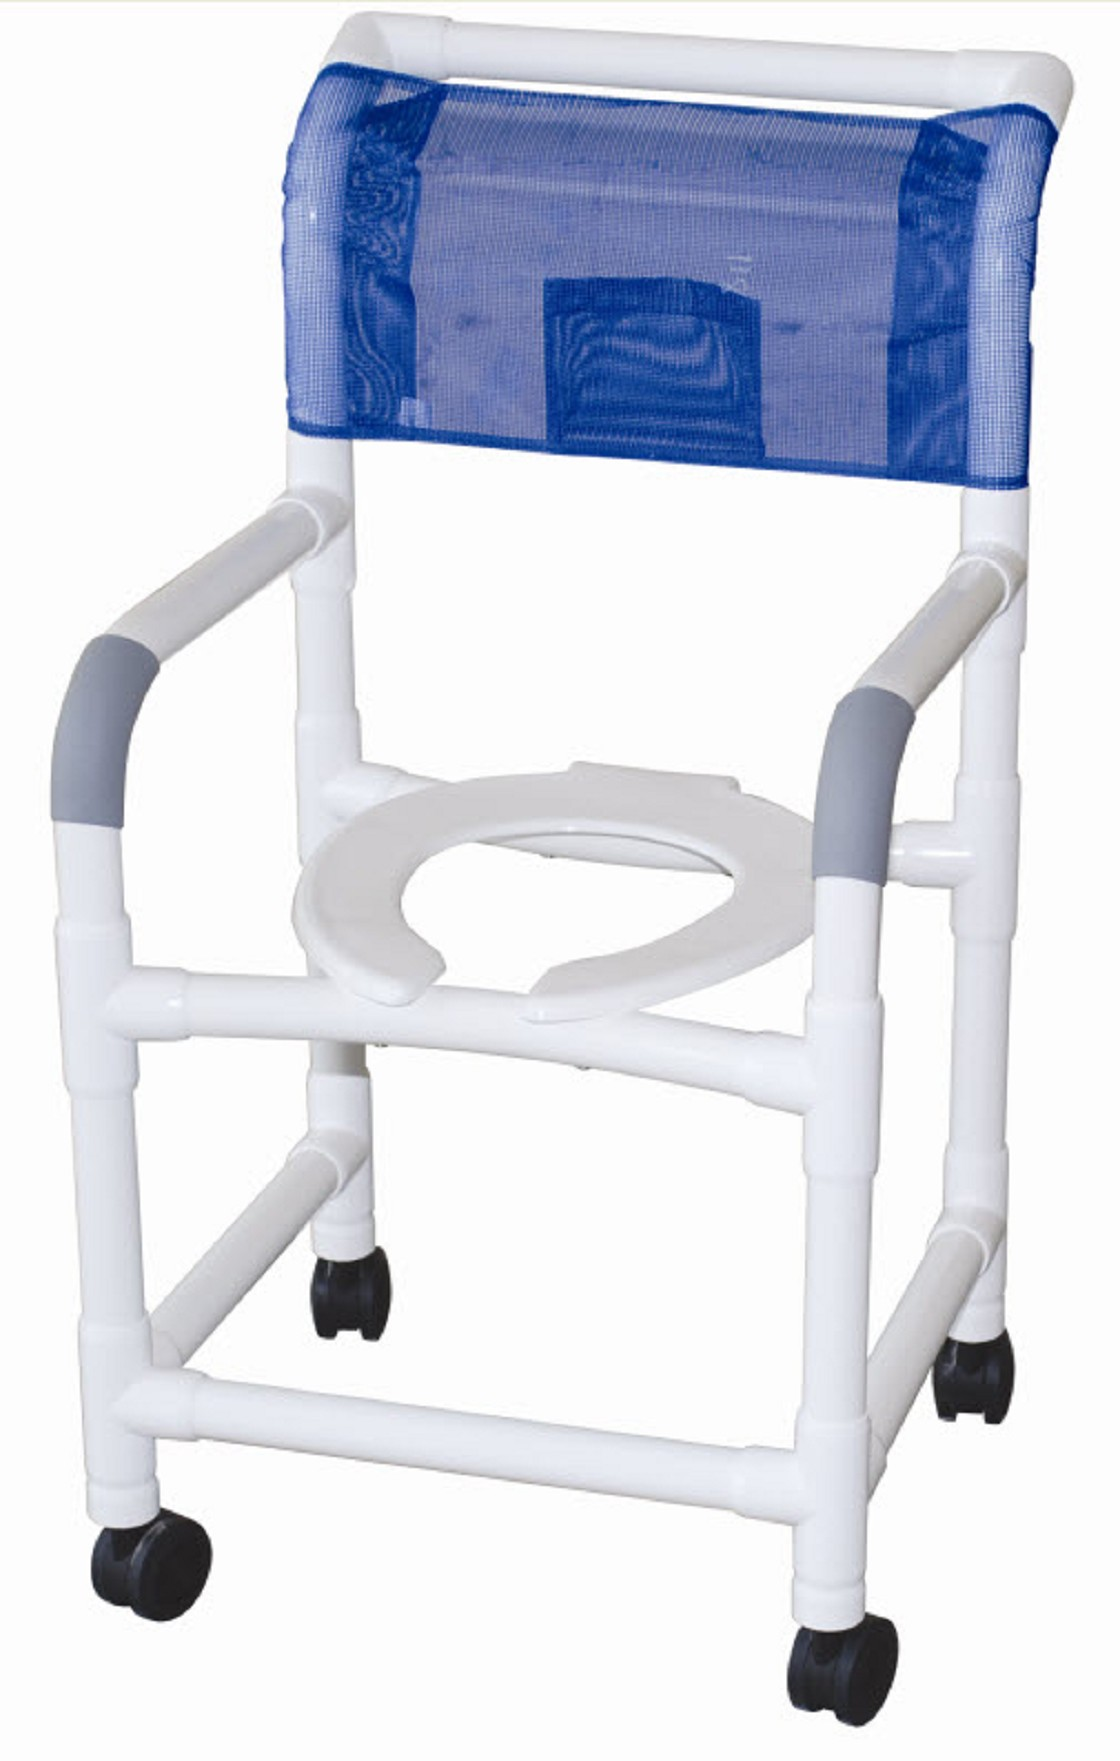 18 Inch Internal Width Shower Chair FREE Shipping